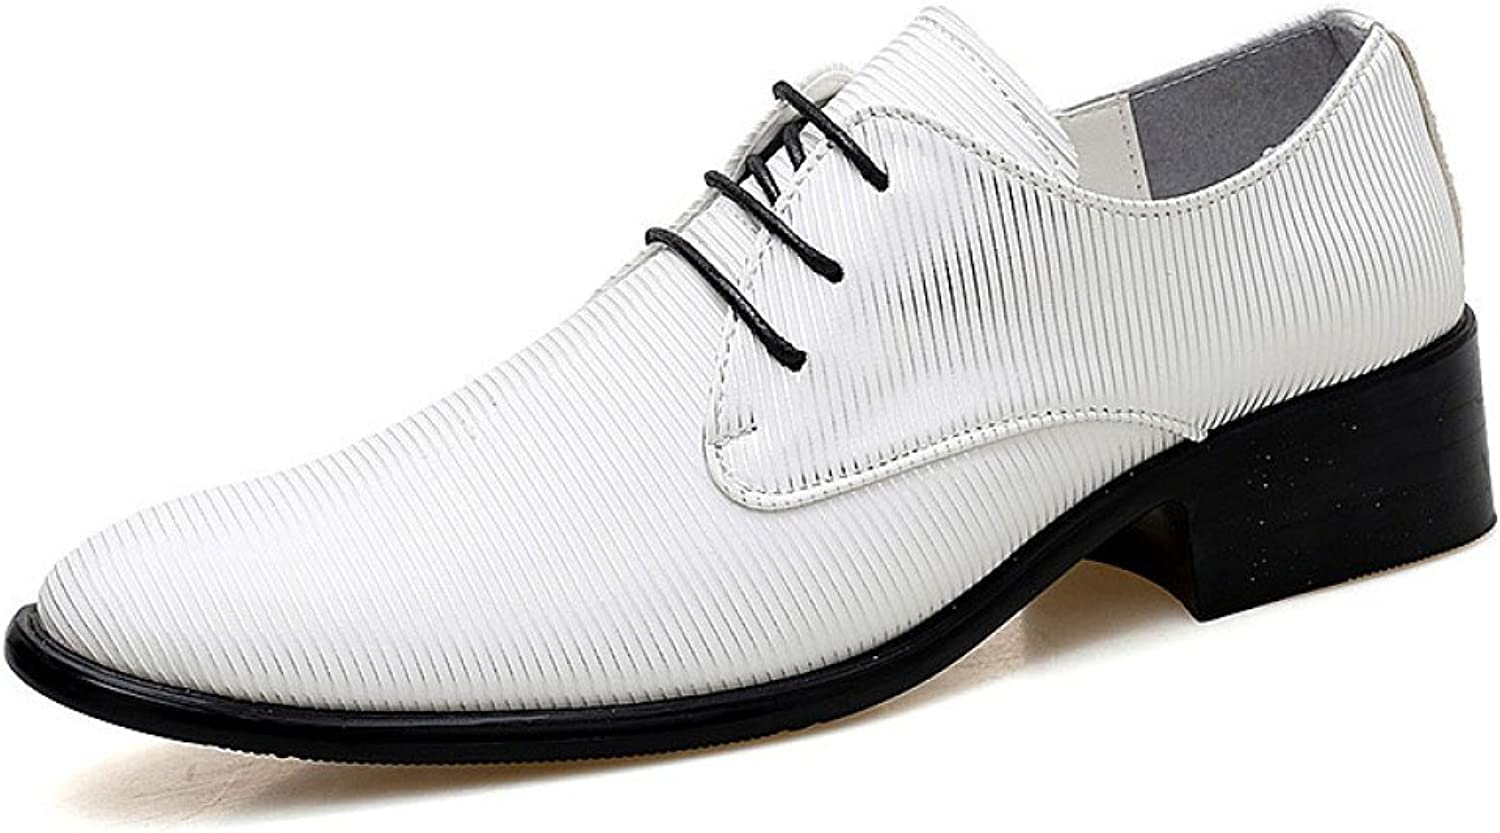 ZLLNSPX Men's Casual Business shoes Pointed Leather shoes Lace-up Fashion